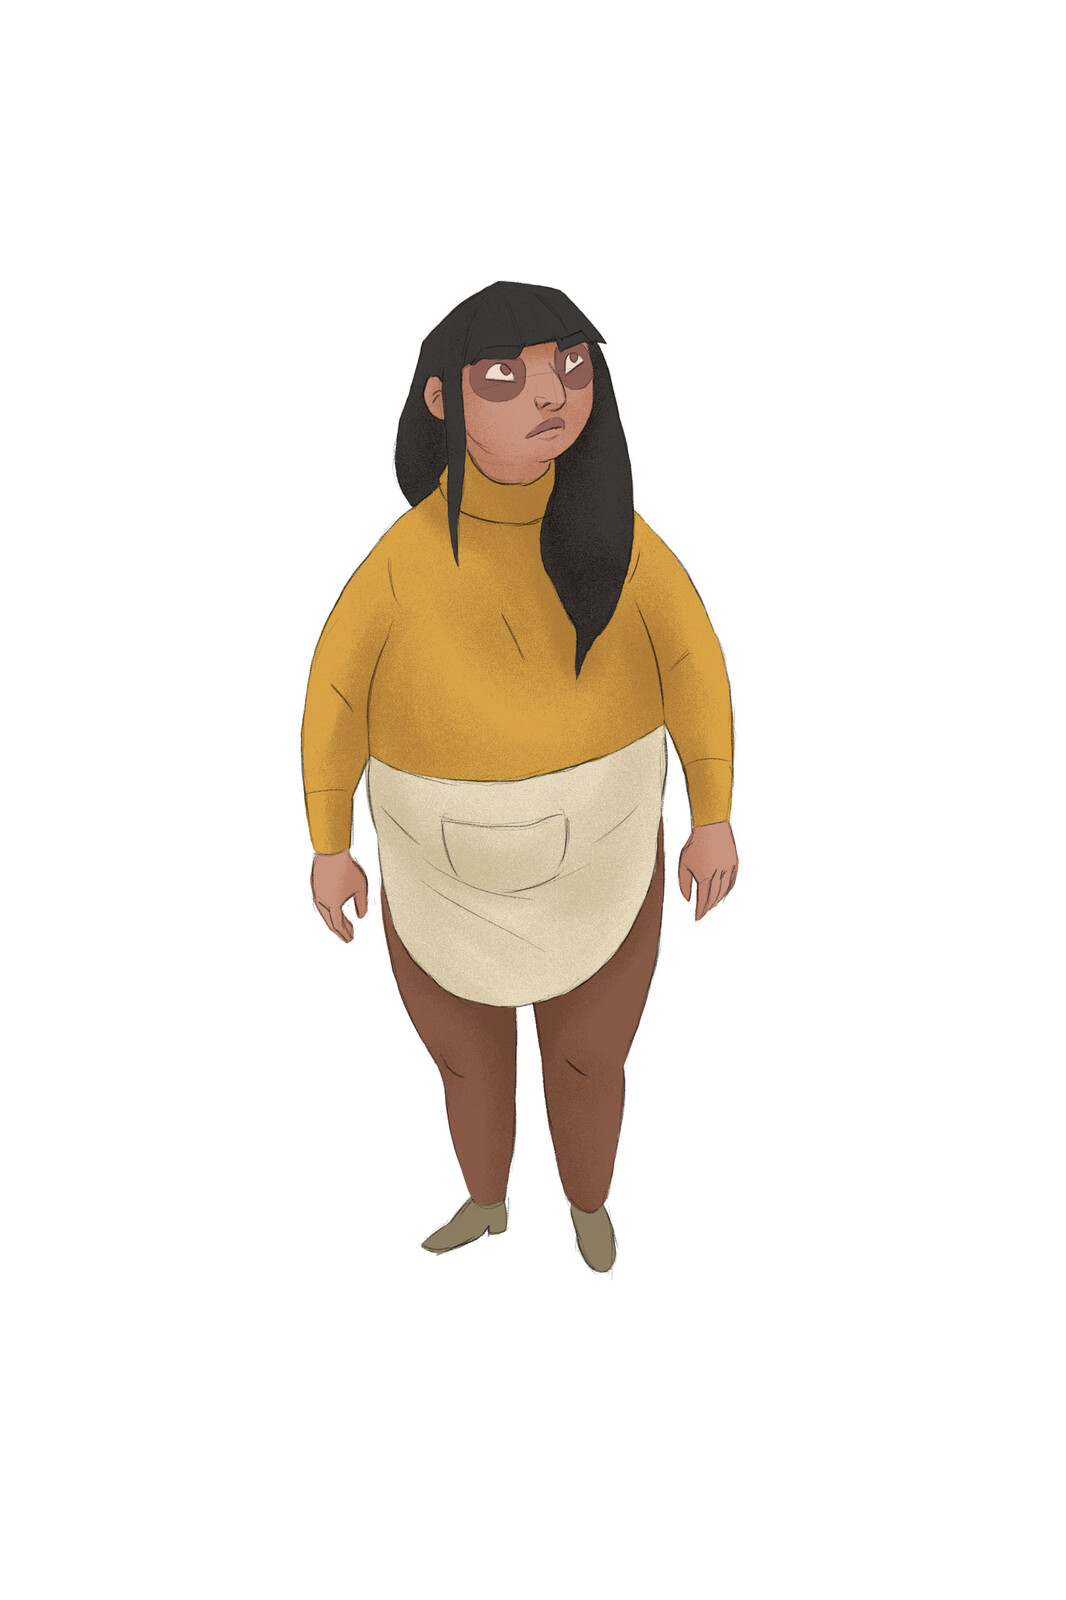 Nina character design, based on concepts by Jessie Francis.